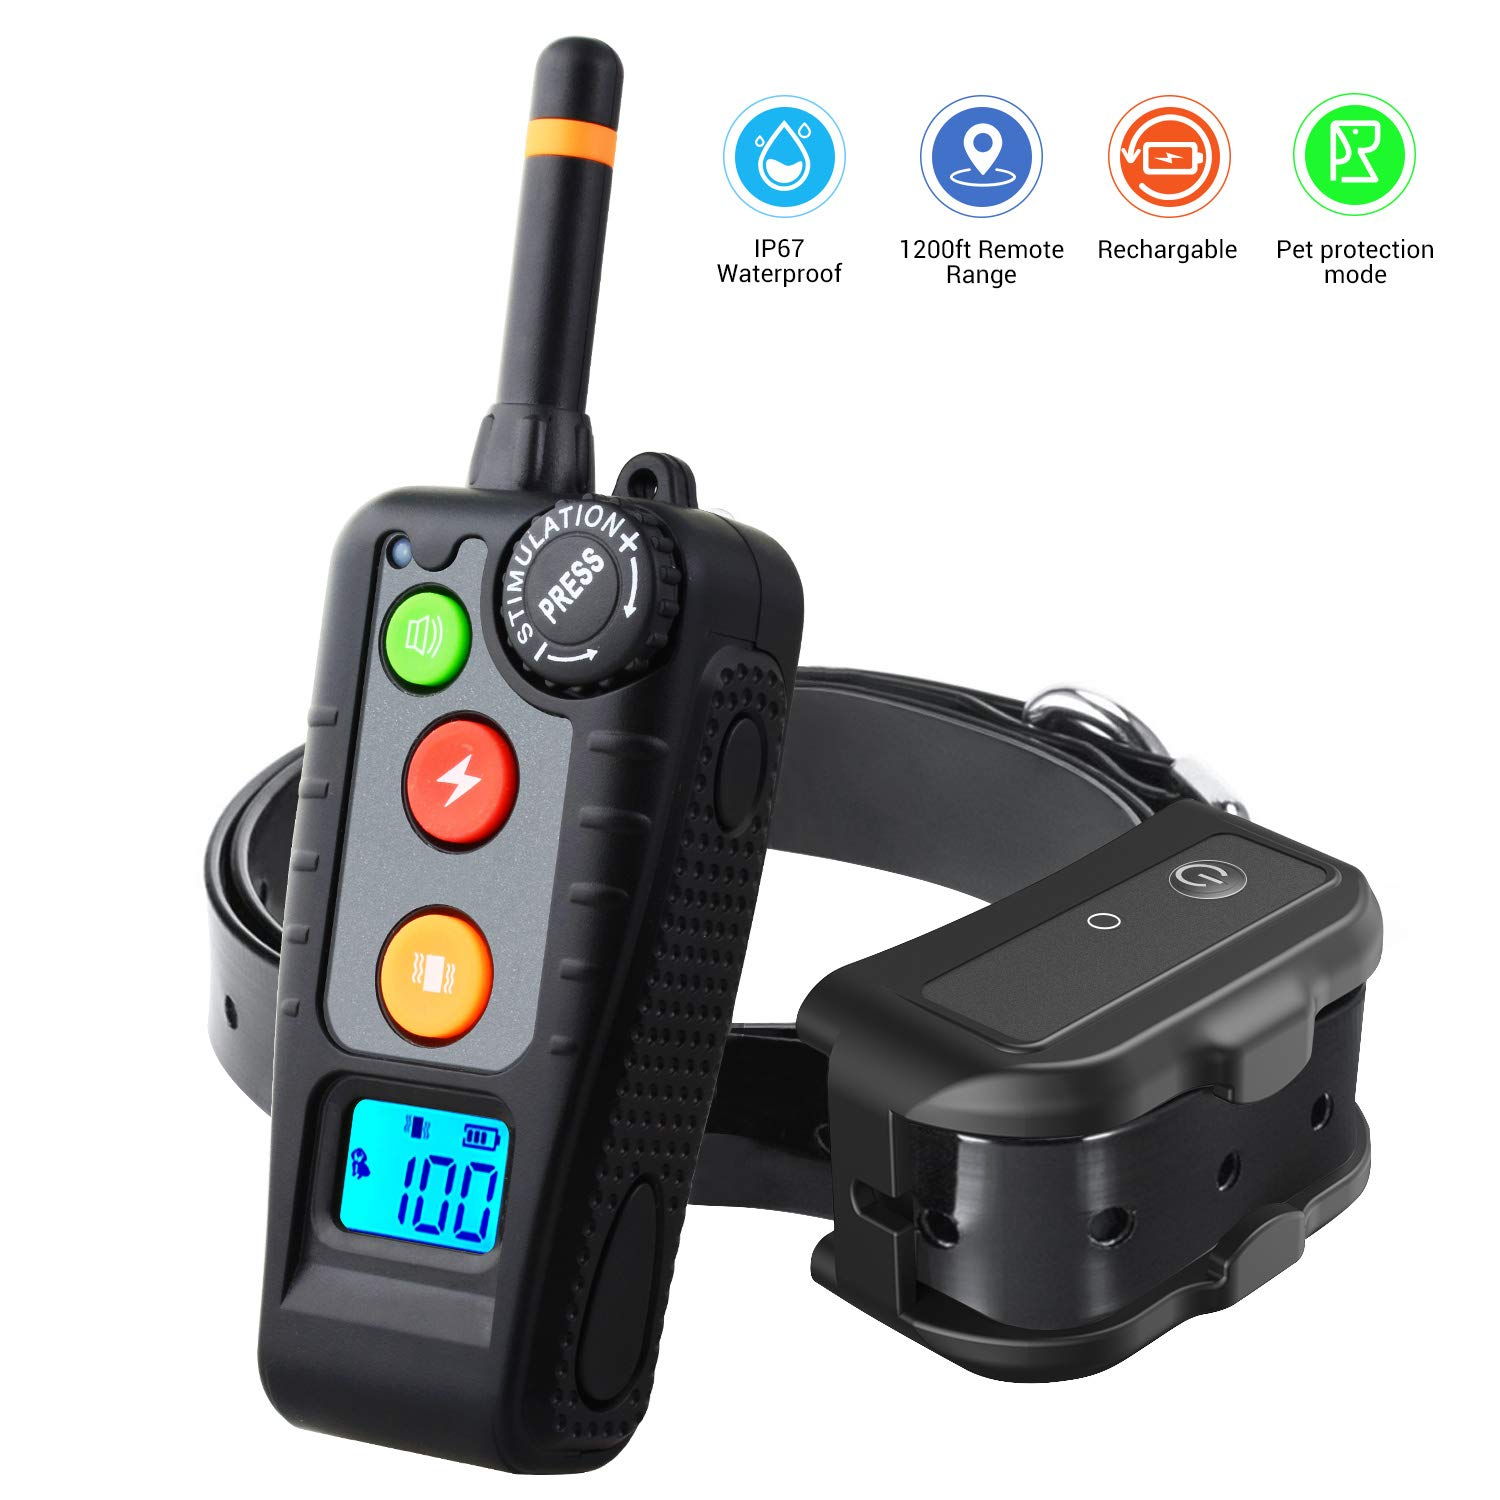 HOLDOG Rechargeable Dog Training Collar with 3 Training Modes, Beep, Vibration and Shock, 100% Waterproof Dog Shock Collar for 1200FT Remote Range by HOLDOG